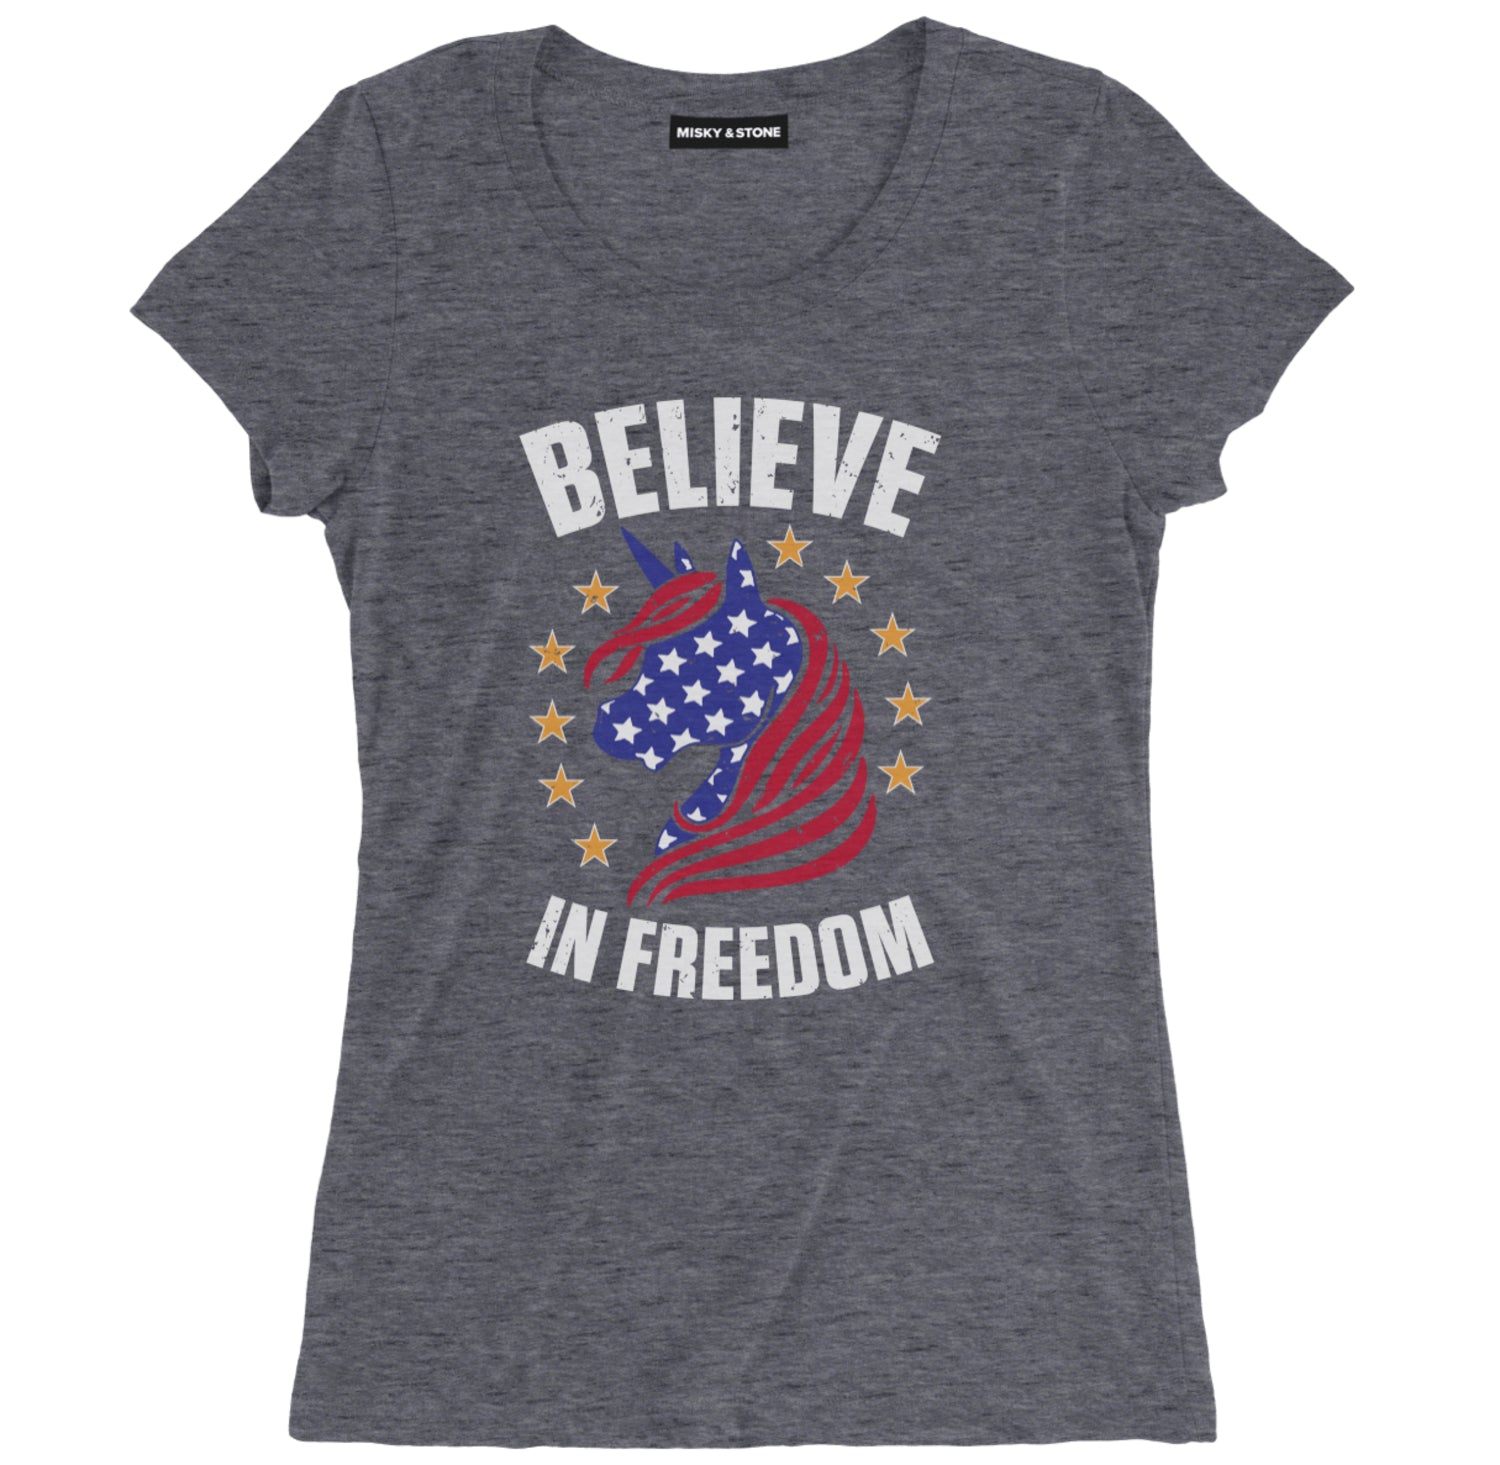 believe in freedom shirt, unicorn shirt, unicorn t shirt, unicorn tee shirts, unicorn tee, funny unicorn t shirts, funny unicorn shirts, cute unicorn shirts,